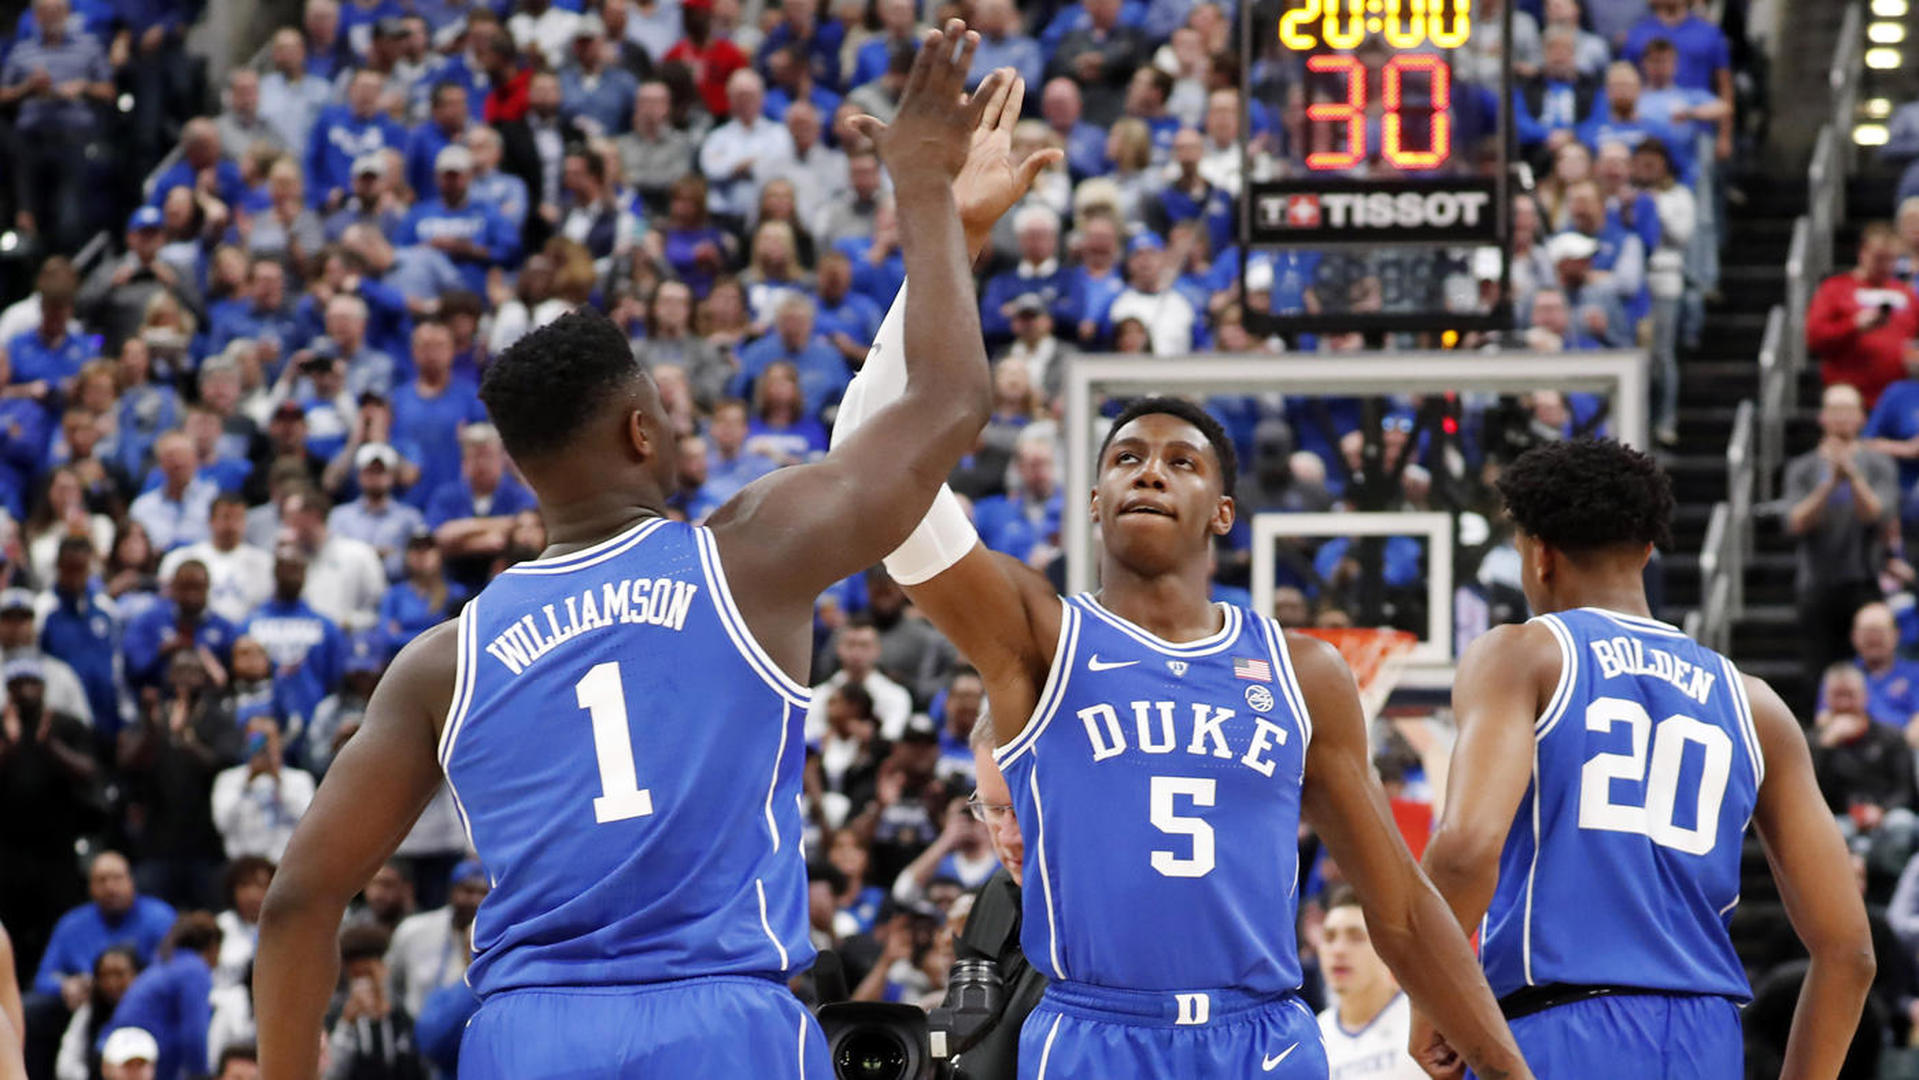 College basketball rankings: No. 1 Duke is the biggest show in the sport thanks to its freshmen Big Three